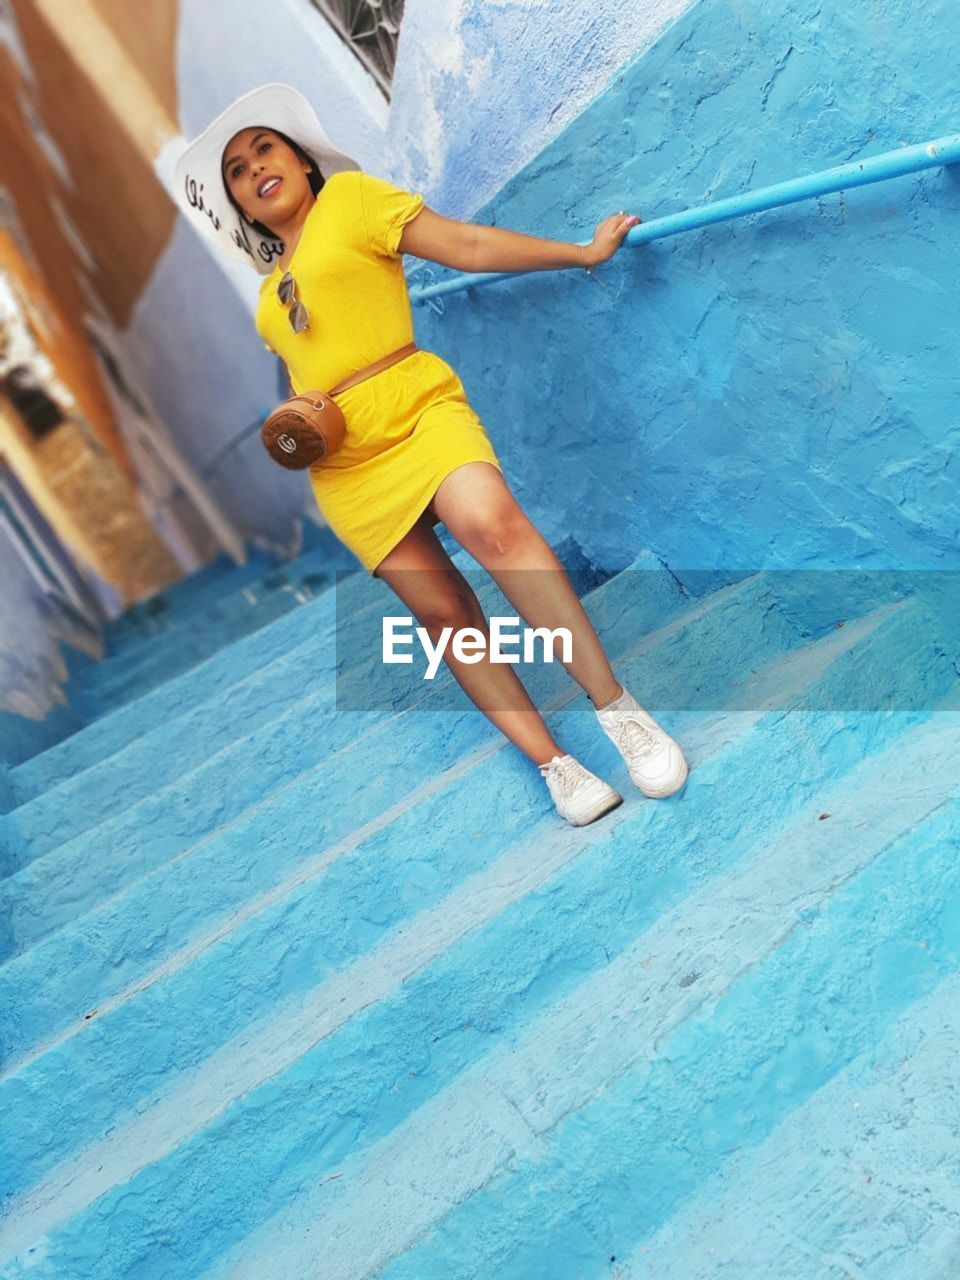 HIGH ANGLE VIEW OF WOMAN IN POOL